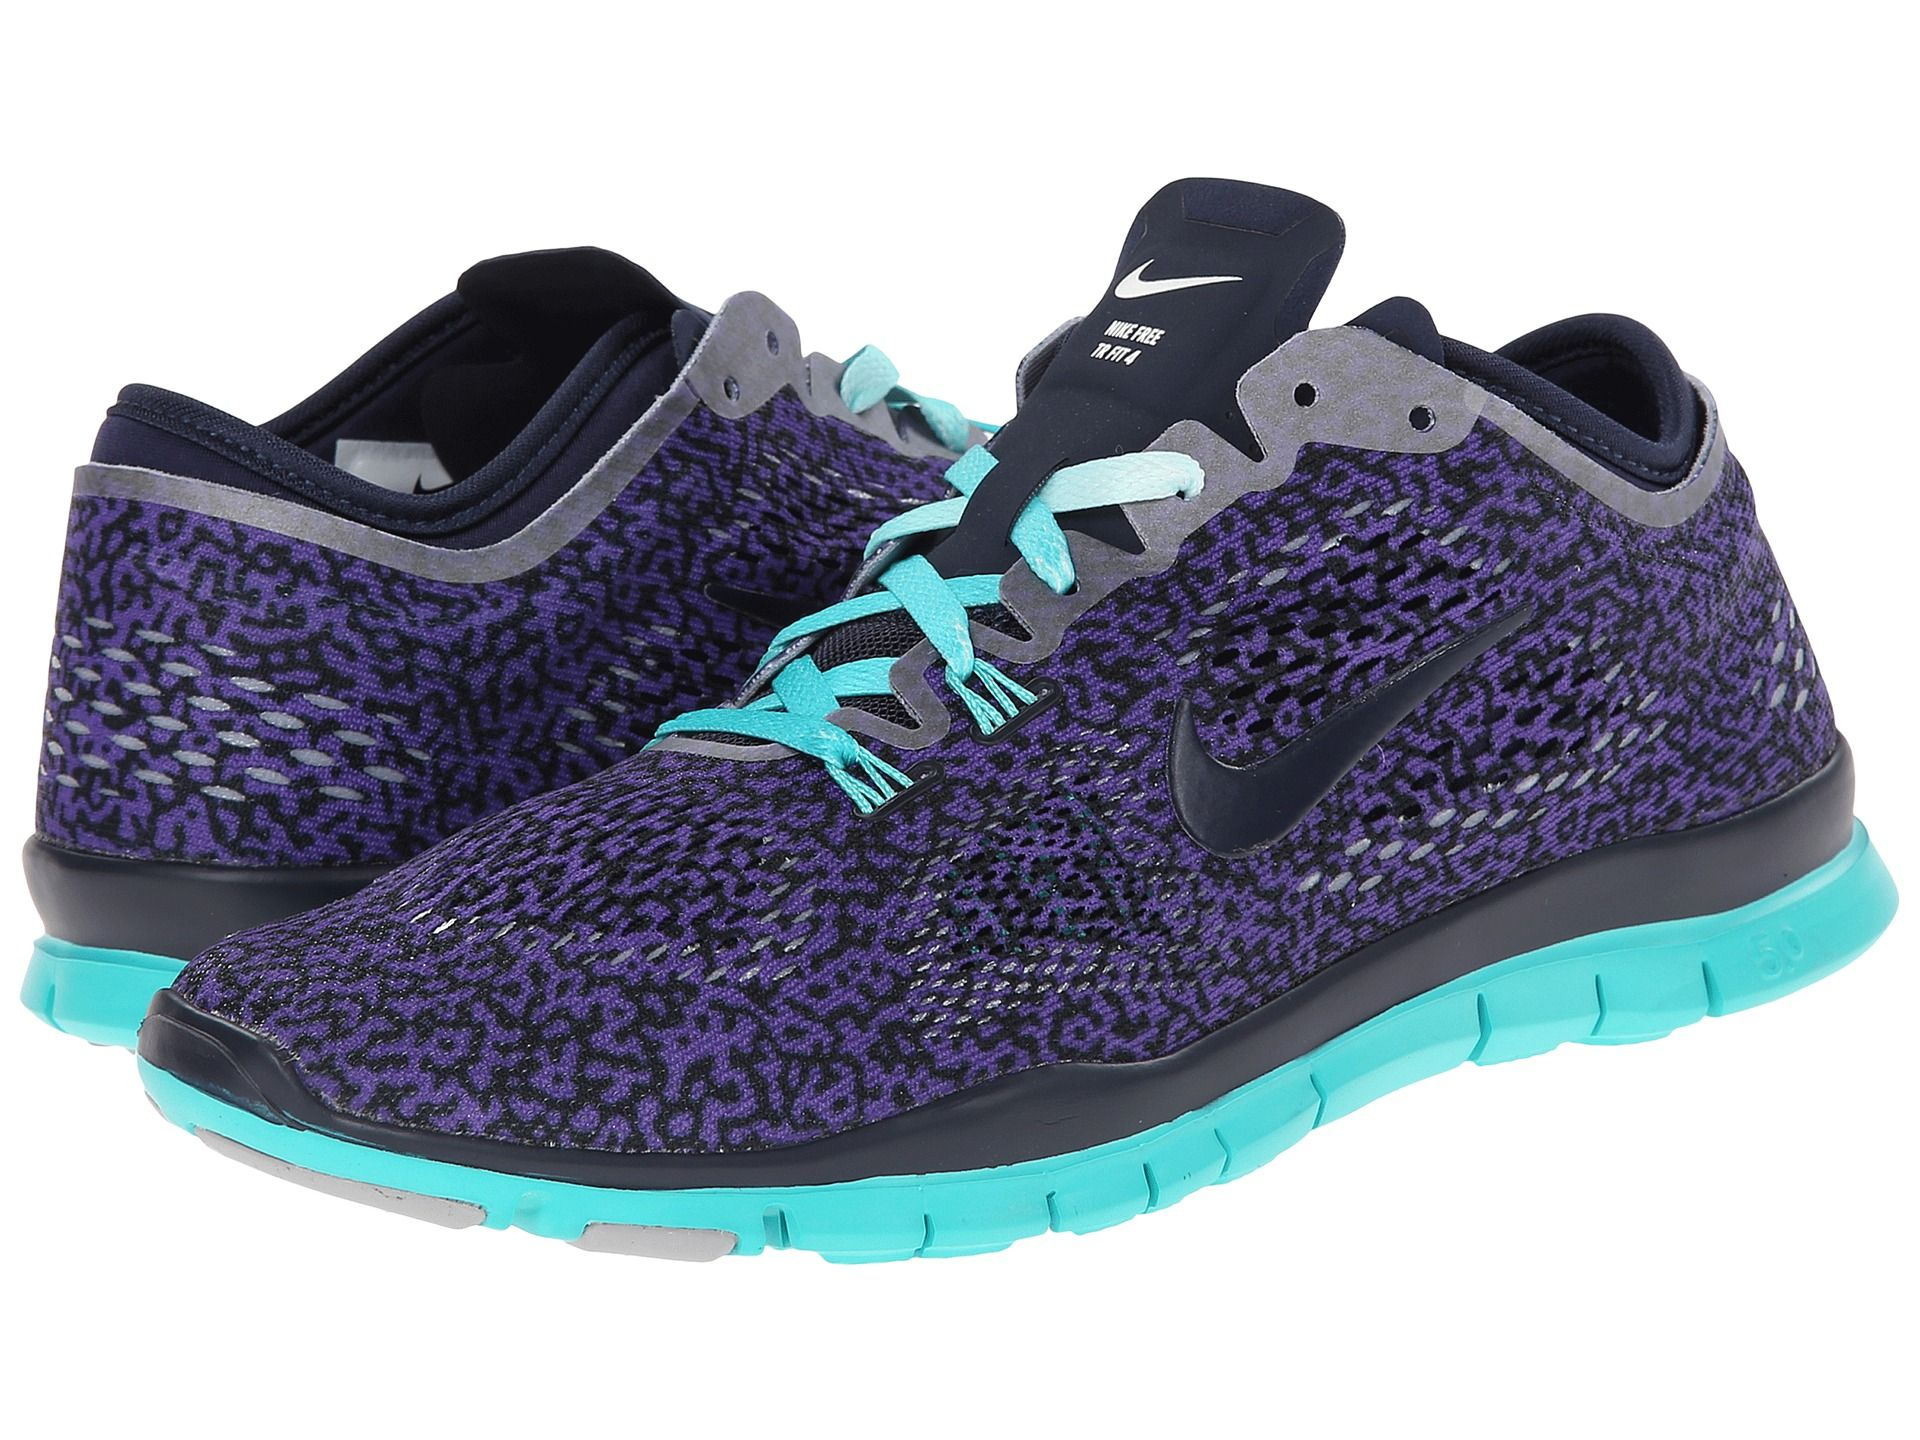 30f65758a59a Nike Free 5 0 TR Fit 4 Print Women s Training Running Shoes Purple Black  Gray Bl